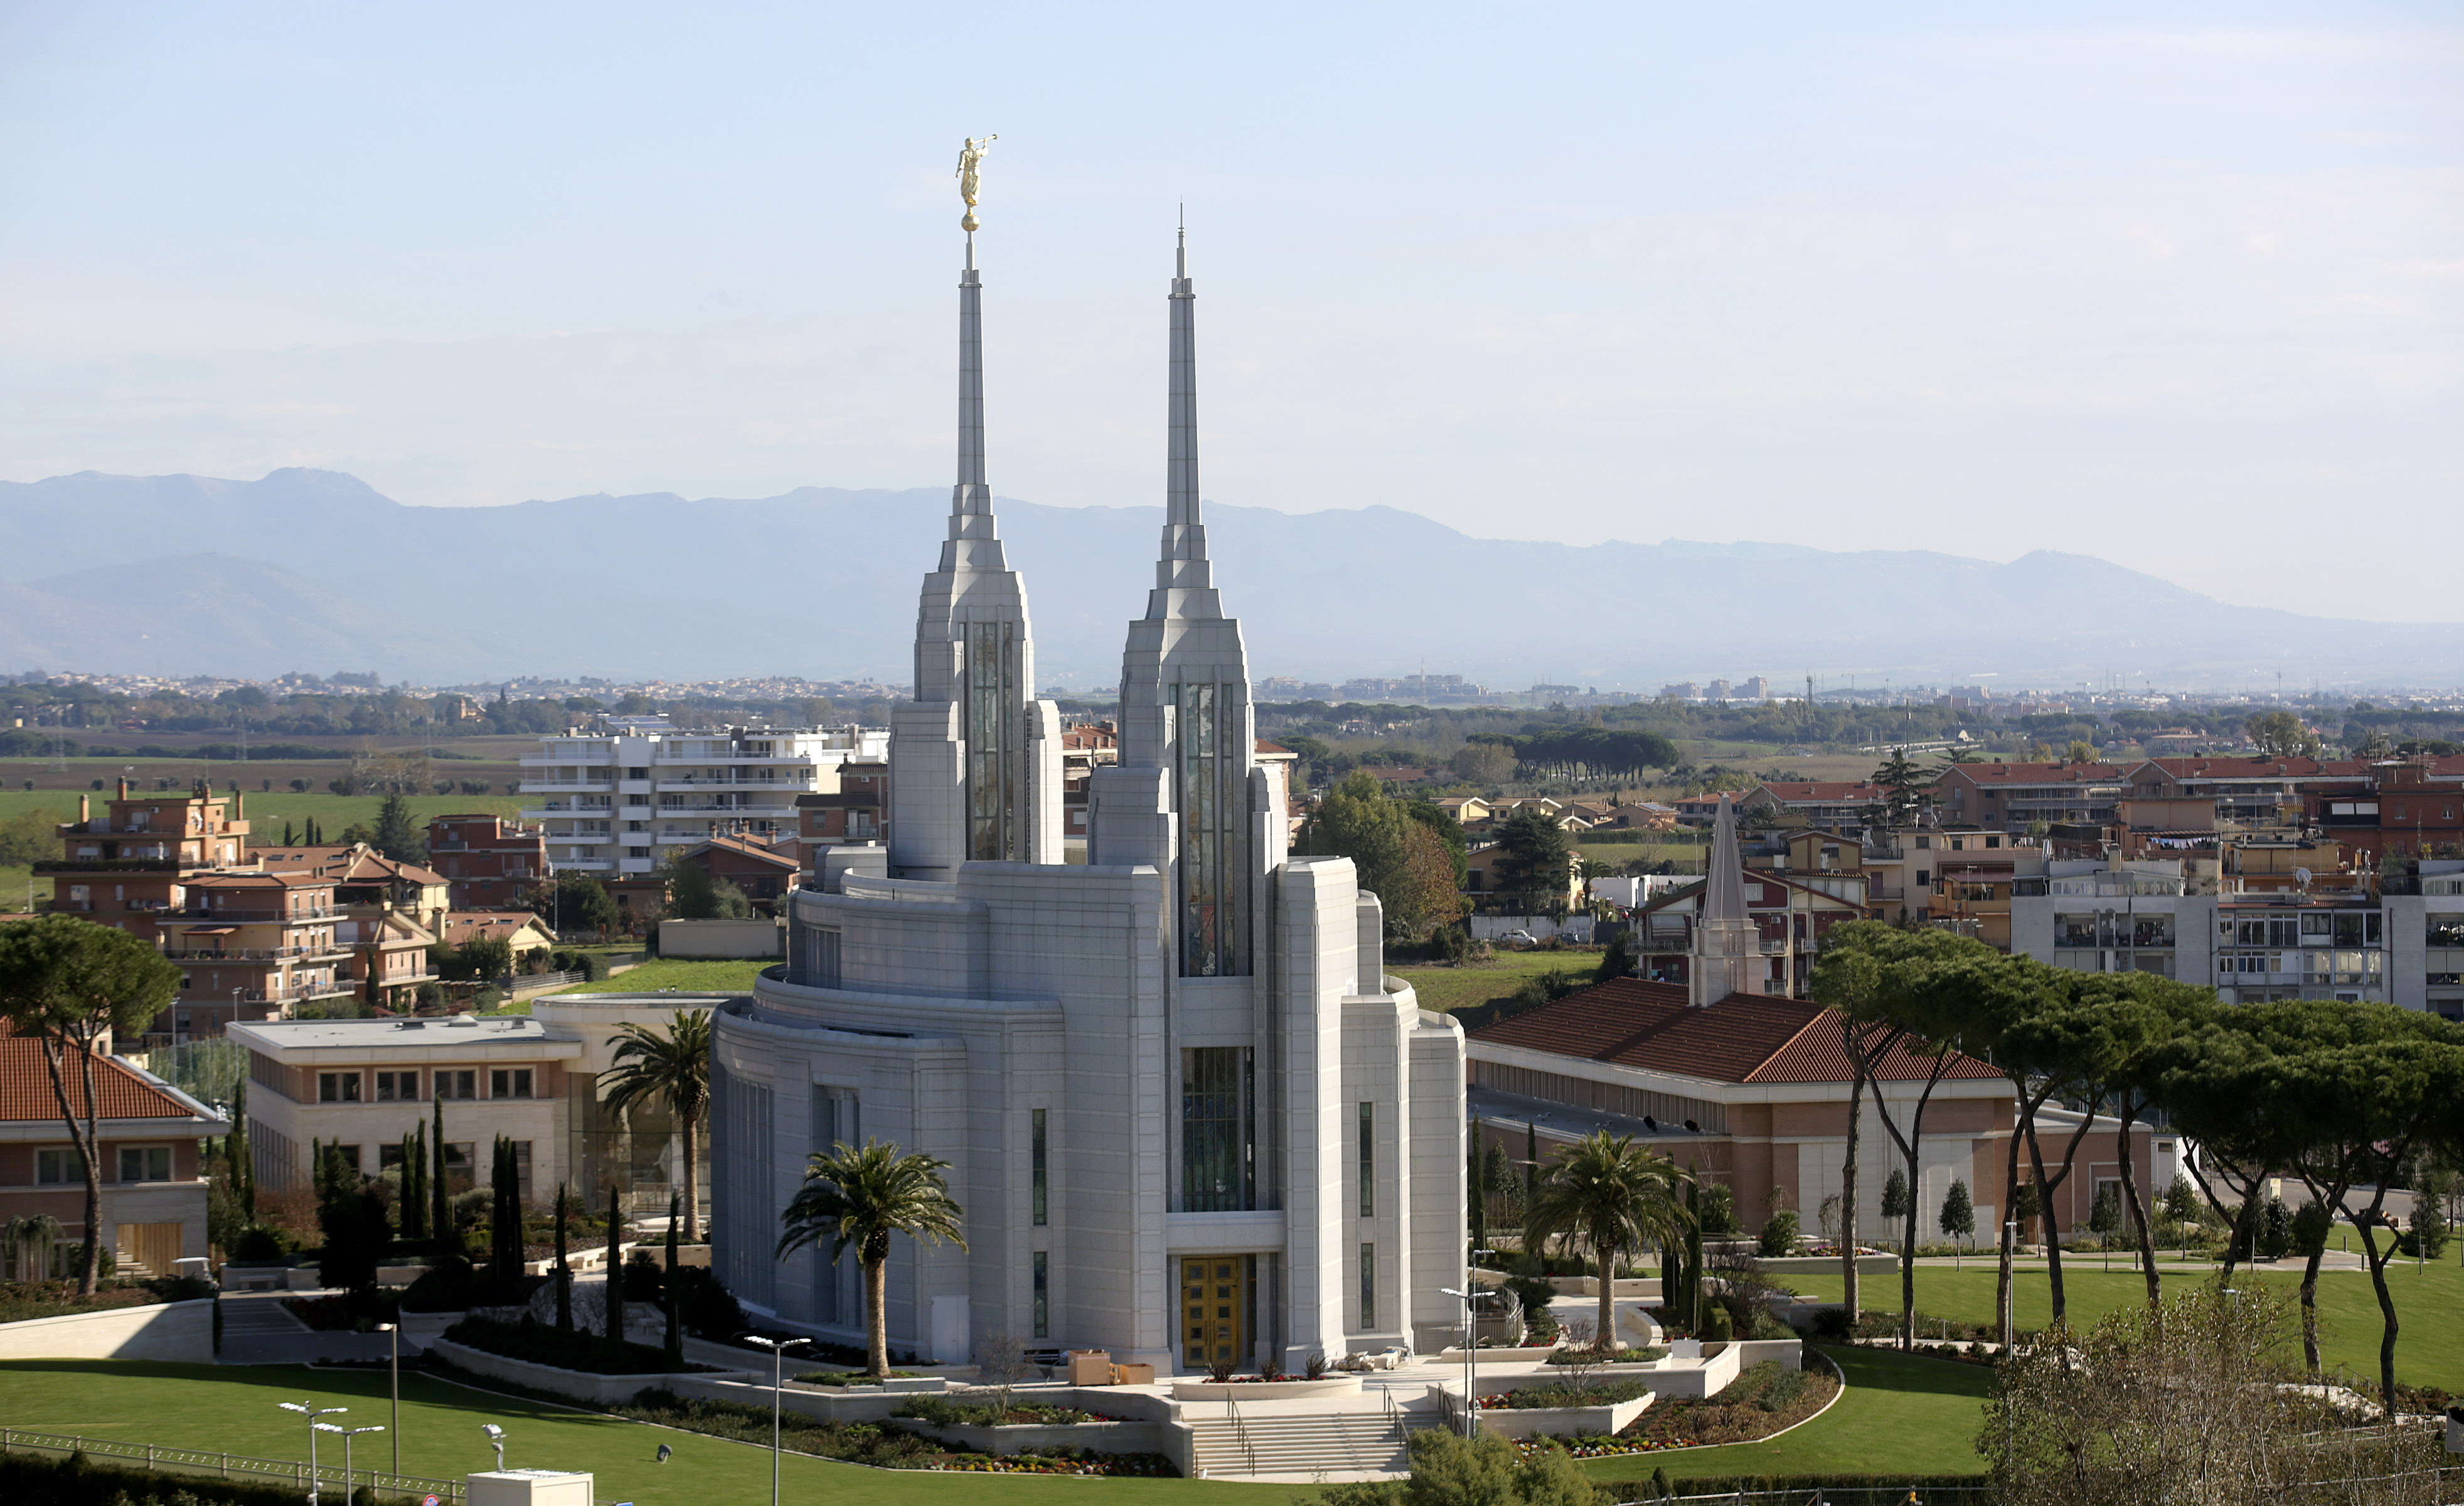 Rome Temple in Rome, Italy, on Sunday, Nov. 18, 2018.